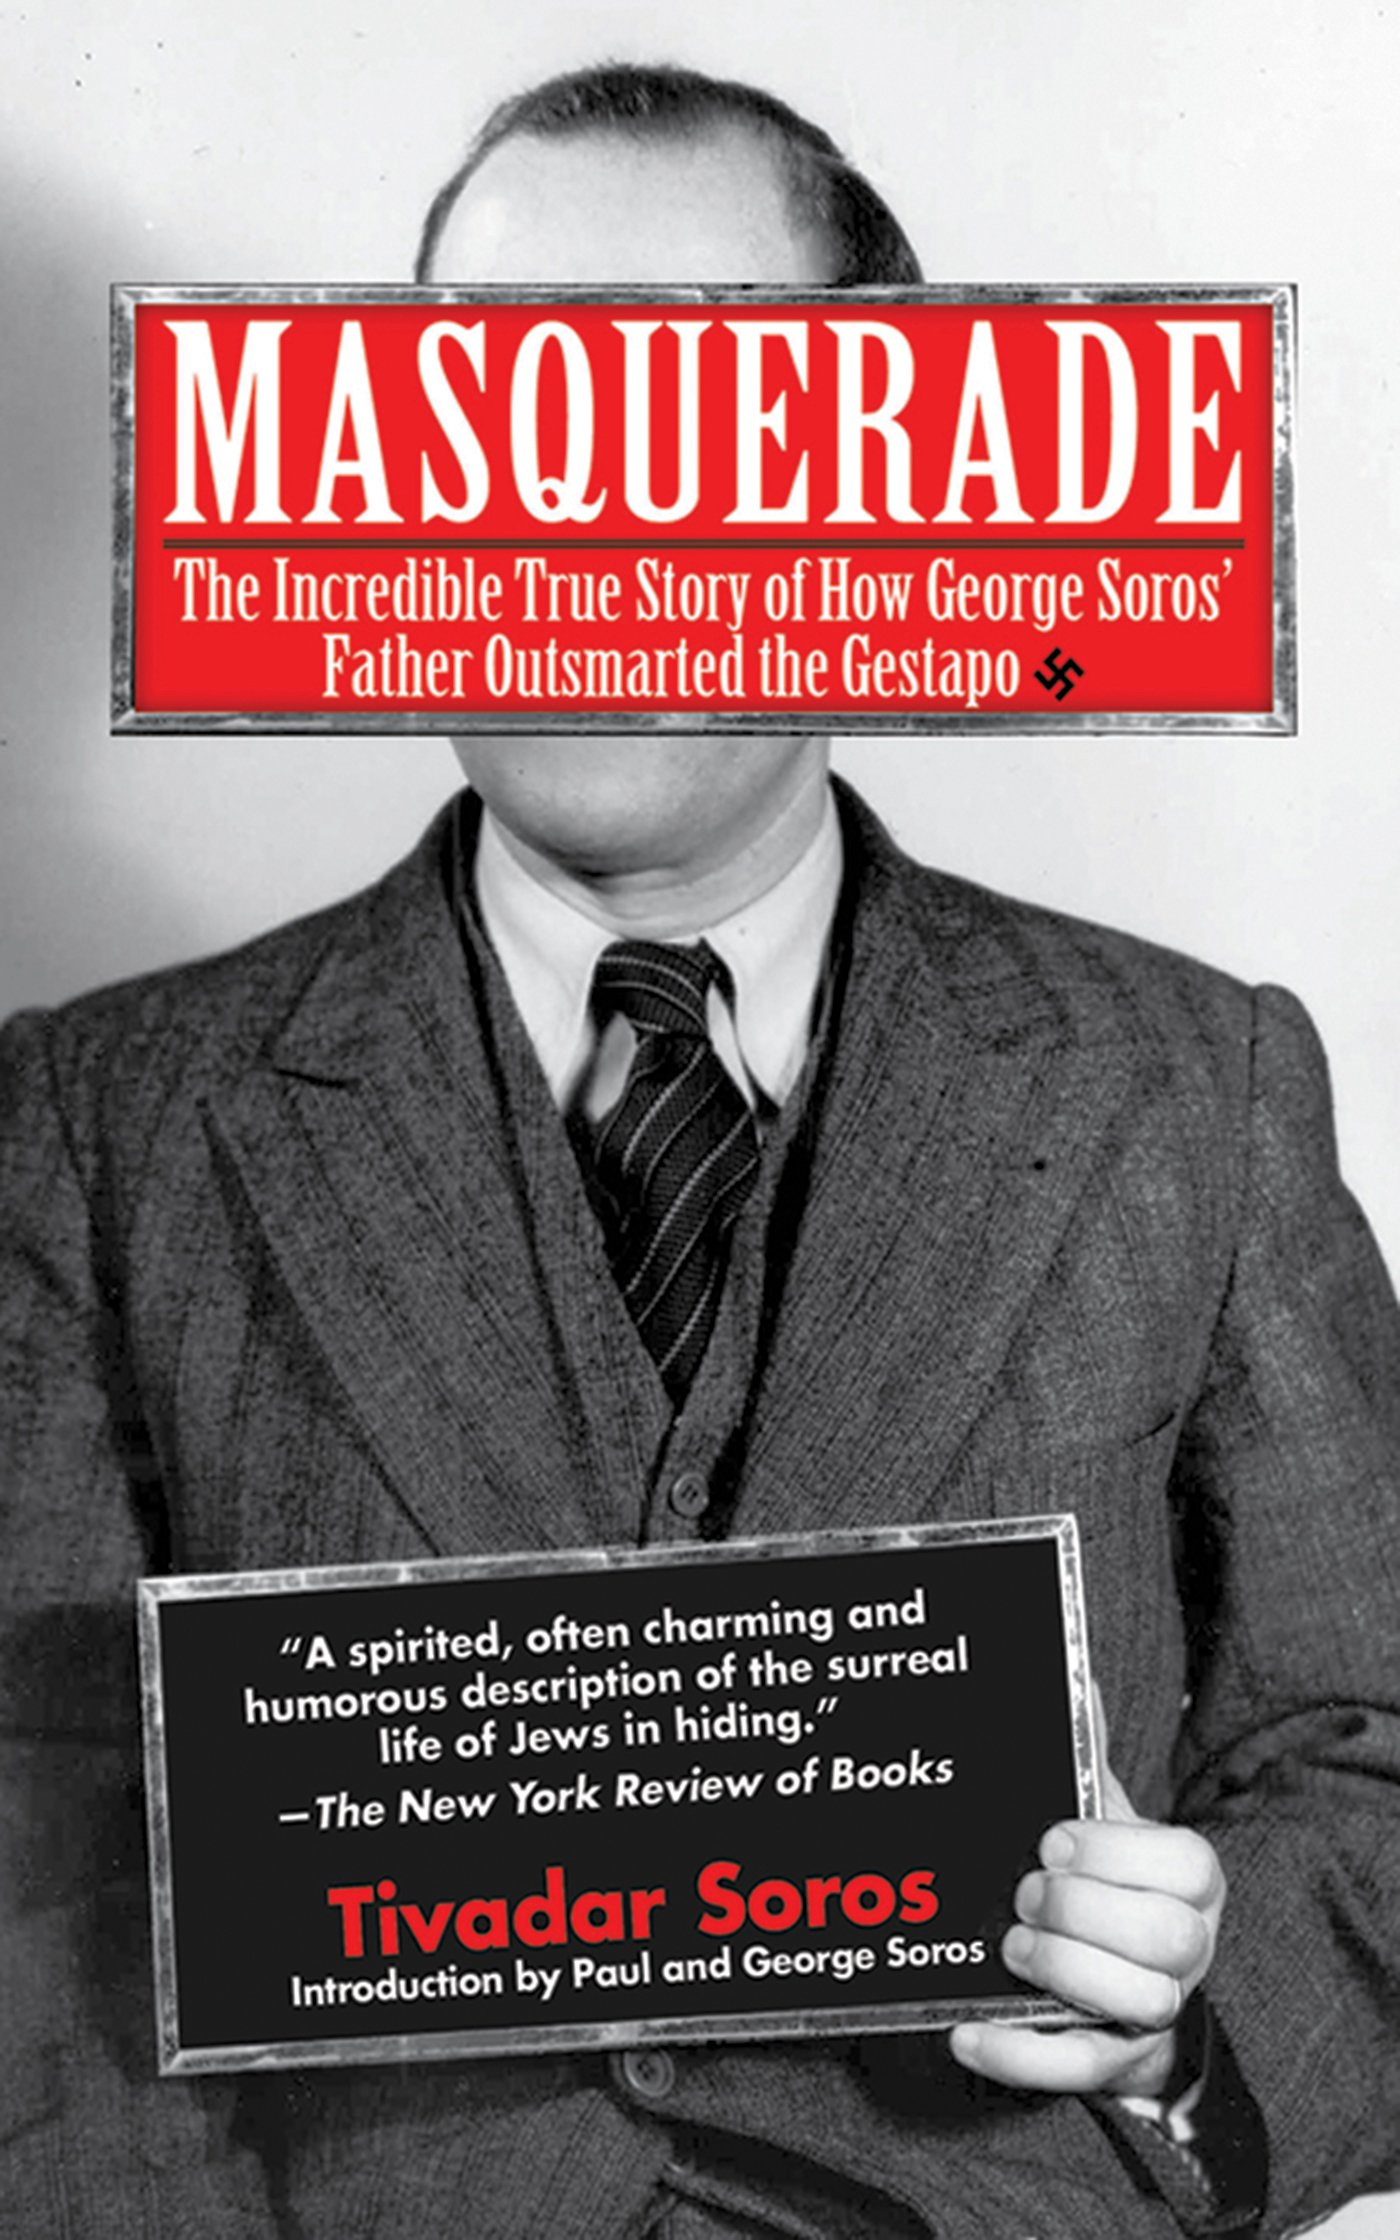 Masquerade: The Incredible True Story of How George Soros' Father Outsmarted the Gestapo ebook